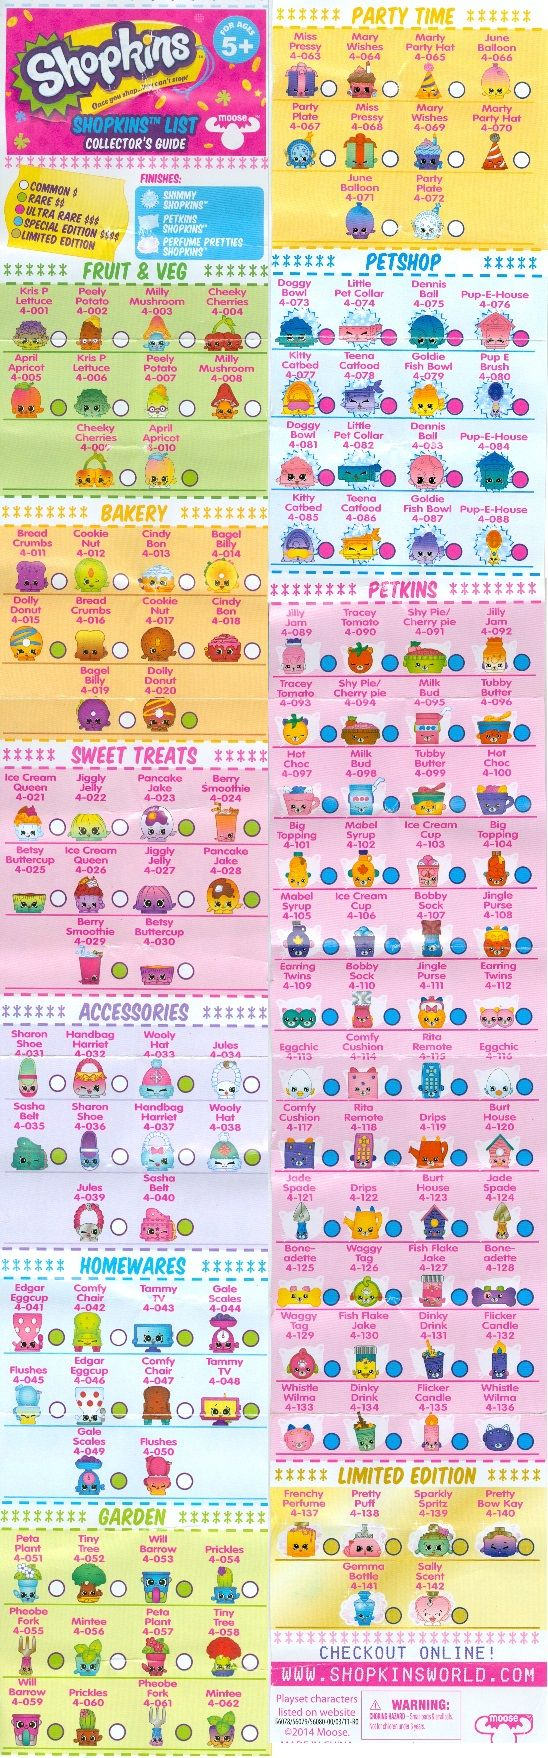 graphic regarding Printable Shopkins List identified as Shopkins Year 4 Shopkins - Dex Shopkins figures